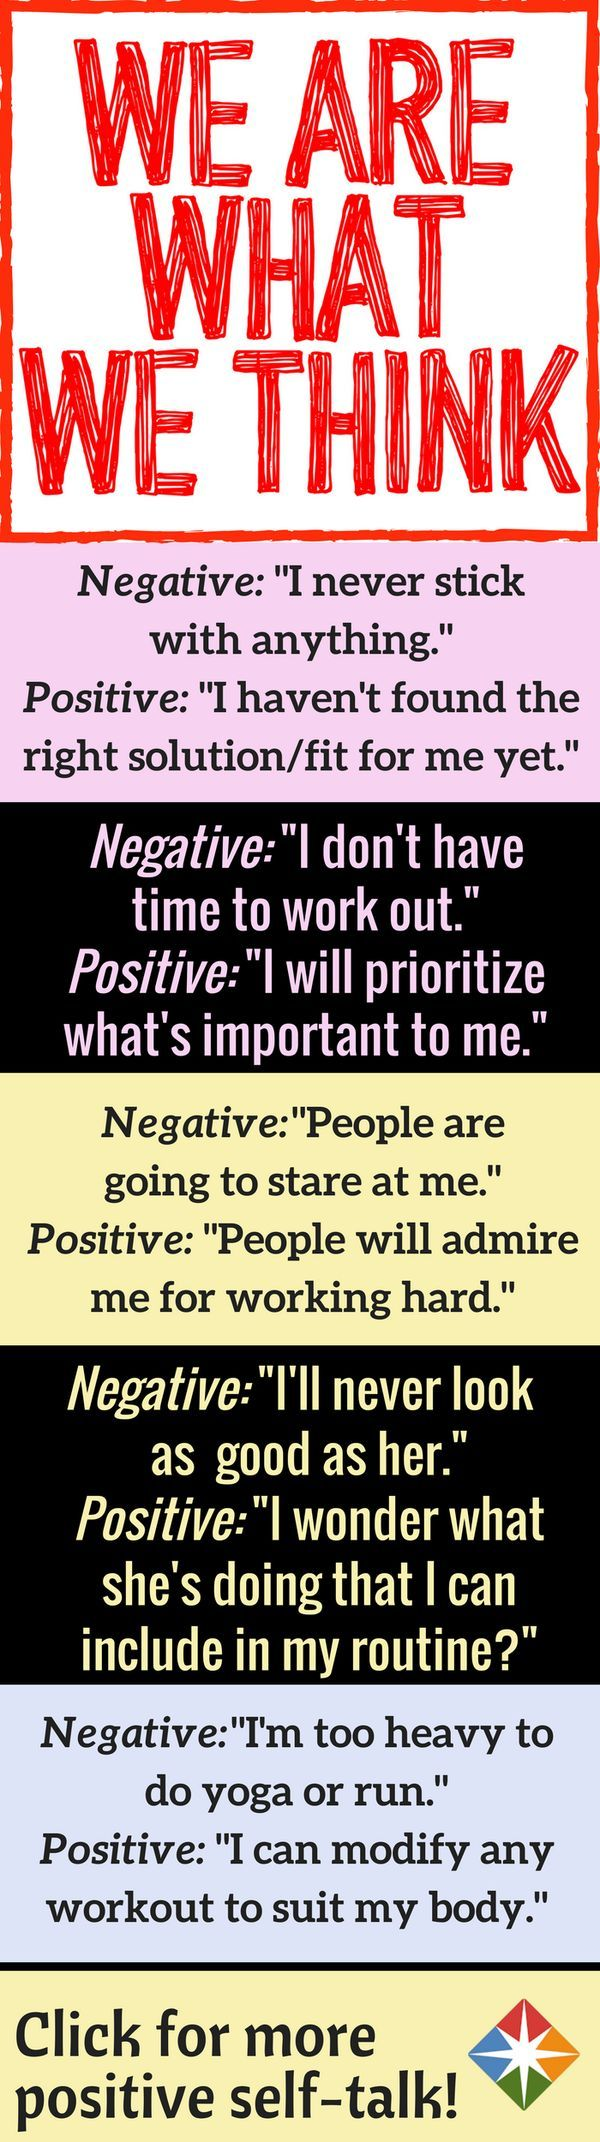 You'd never dream of firing off these sayings to someone else -- so why tell them to yourself? The first step to better health and a higher quality of life is to master the art of positive thinking. Start here!